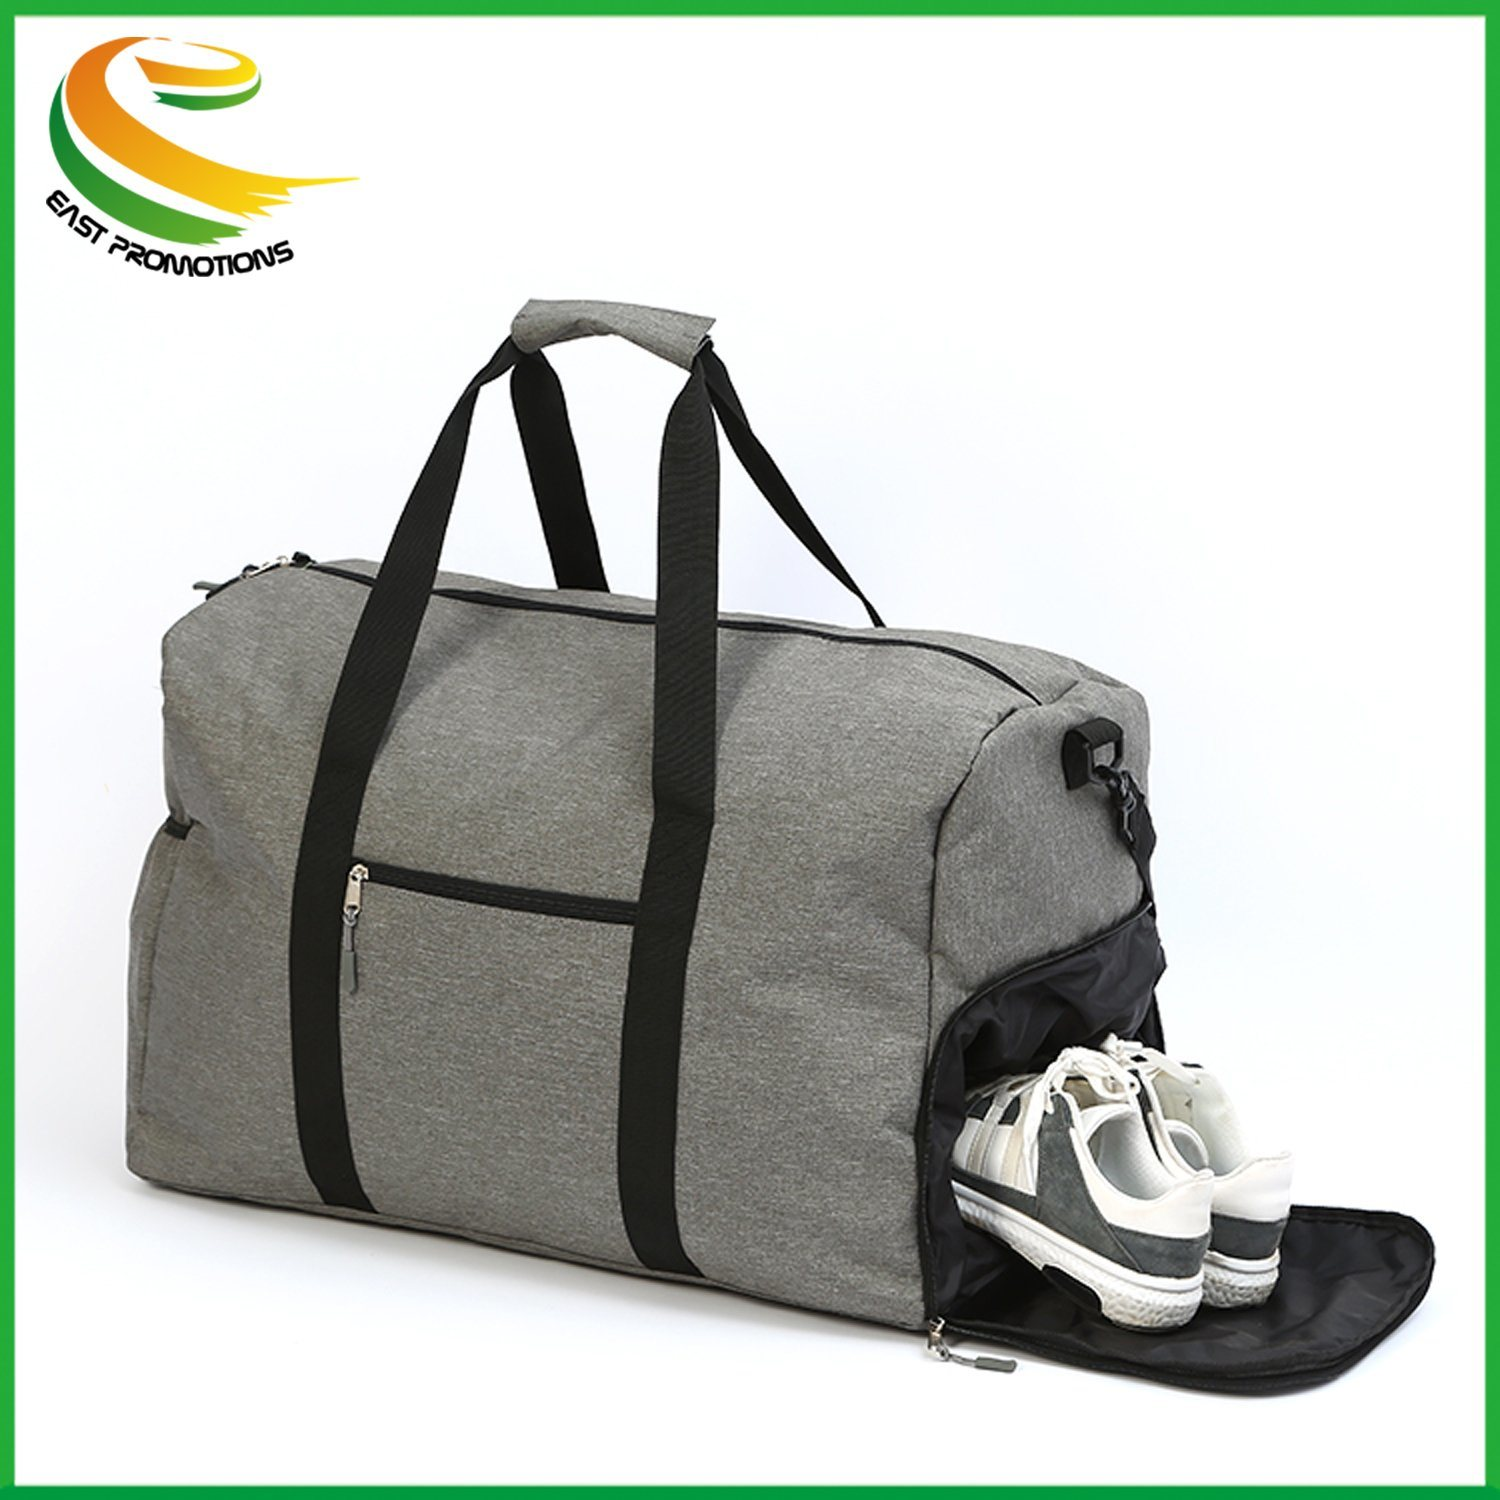 ae941293769 Outdoor Travel Large Size Carry-on Duffle Custom Gym Bag with Shoe  Compartment